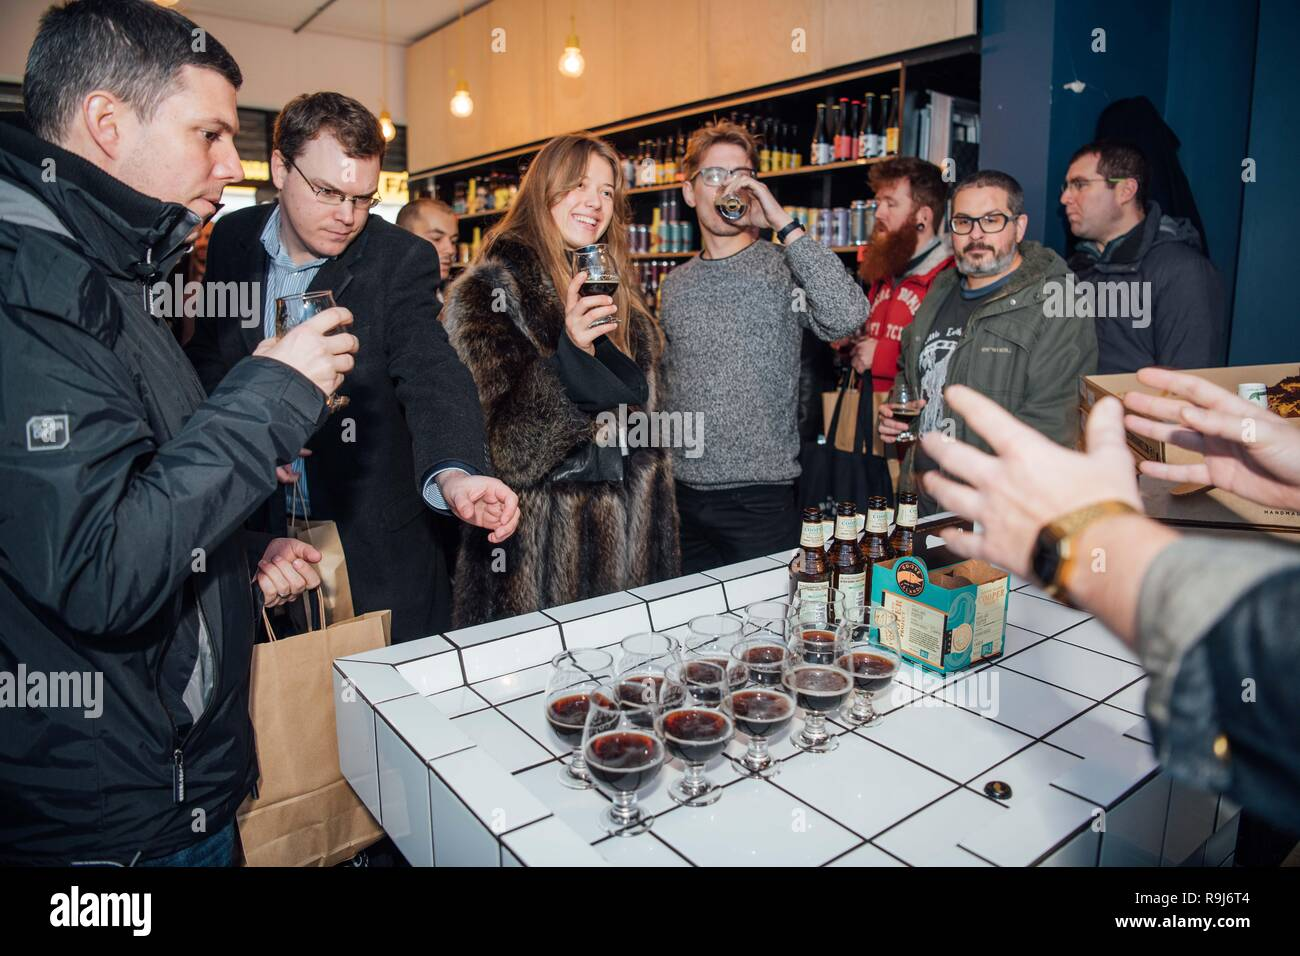 Eager beer lovers across London braved the cold for a £20 bottle of 2018 release of Goose Island's Bourbon County Stout (ABV 15.2%); an exclusive, limited run bourbon-barrel aged imperial stout. Fans in Shoreditch lined-up from 8:00am, indulging specially paired Crosstown doughnuts and an exclusive taste of Goose Island's Cooper Project Barrel-Aged Porter.  Featuring: Atmosphere Where: London, United Kingdom When: 23 Nov 2018 Credit: Scott Garfitt/PinPep/WENN.com - Stock Image